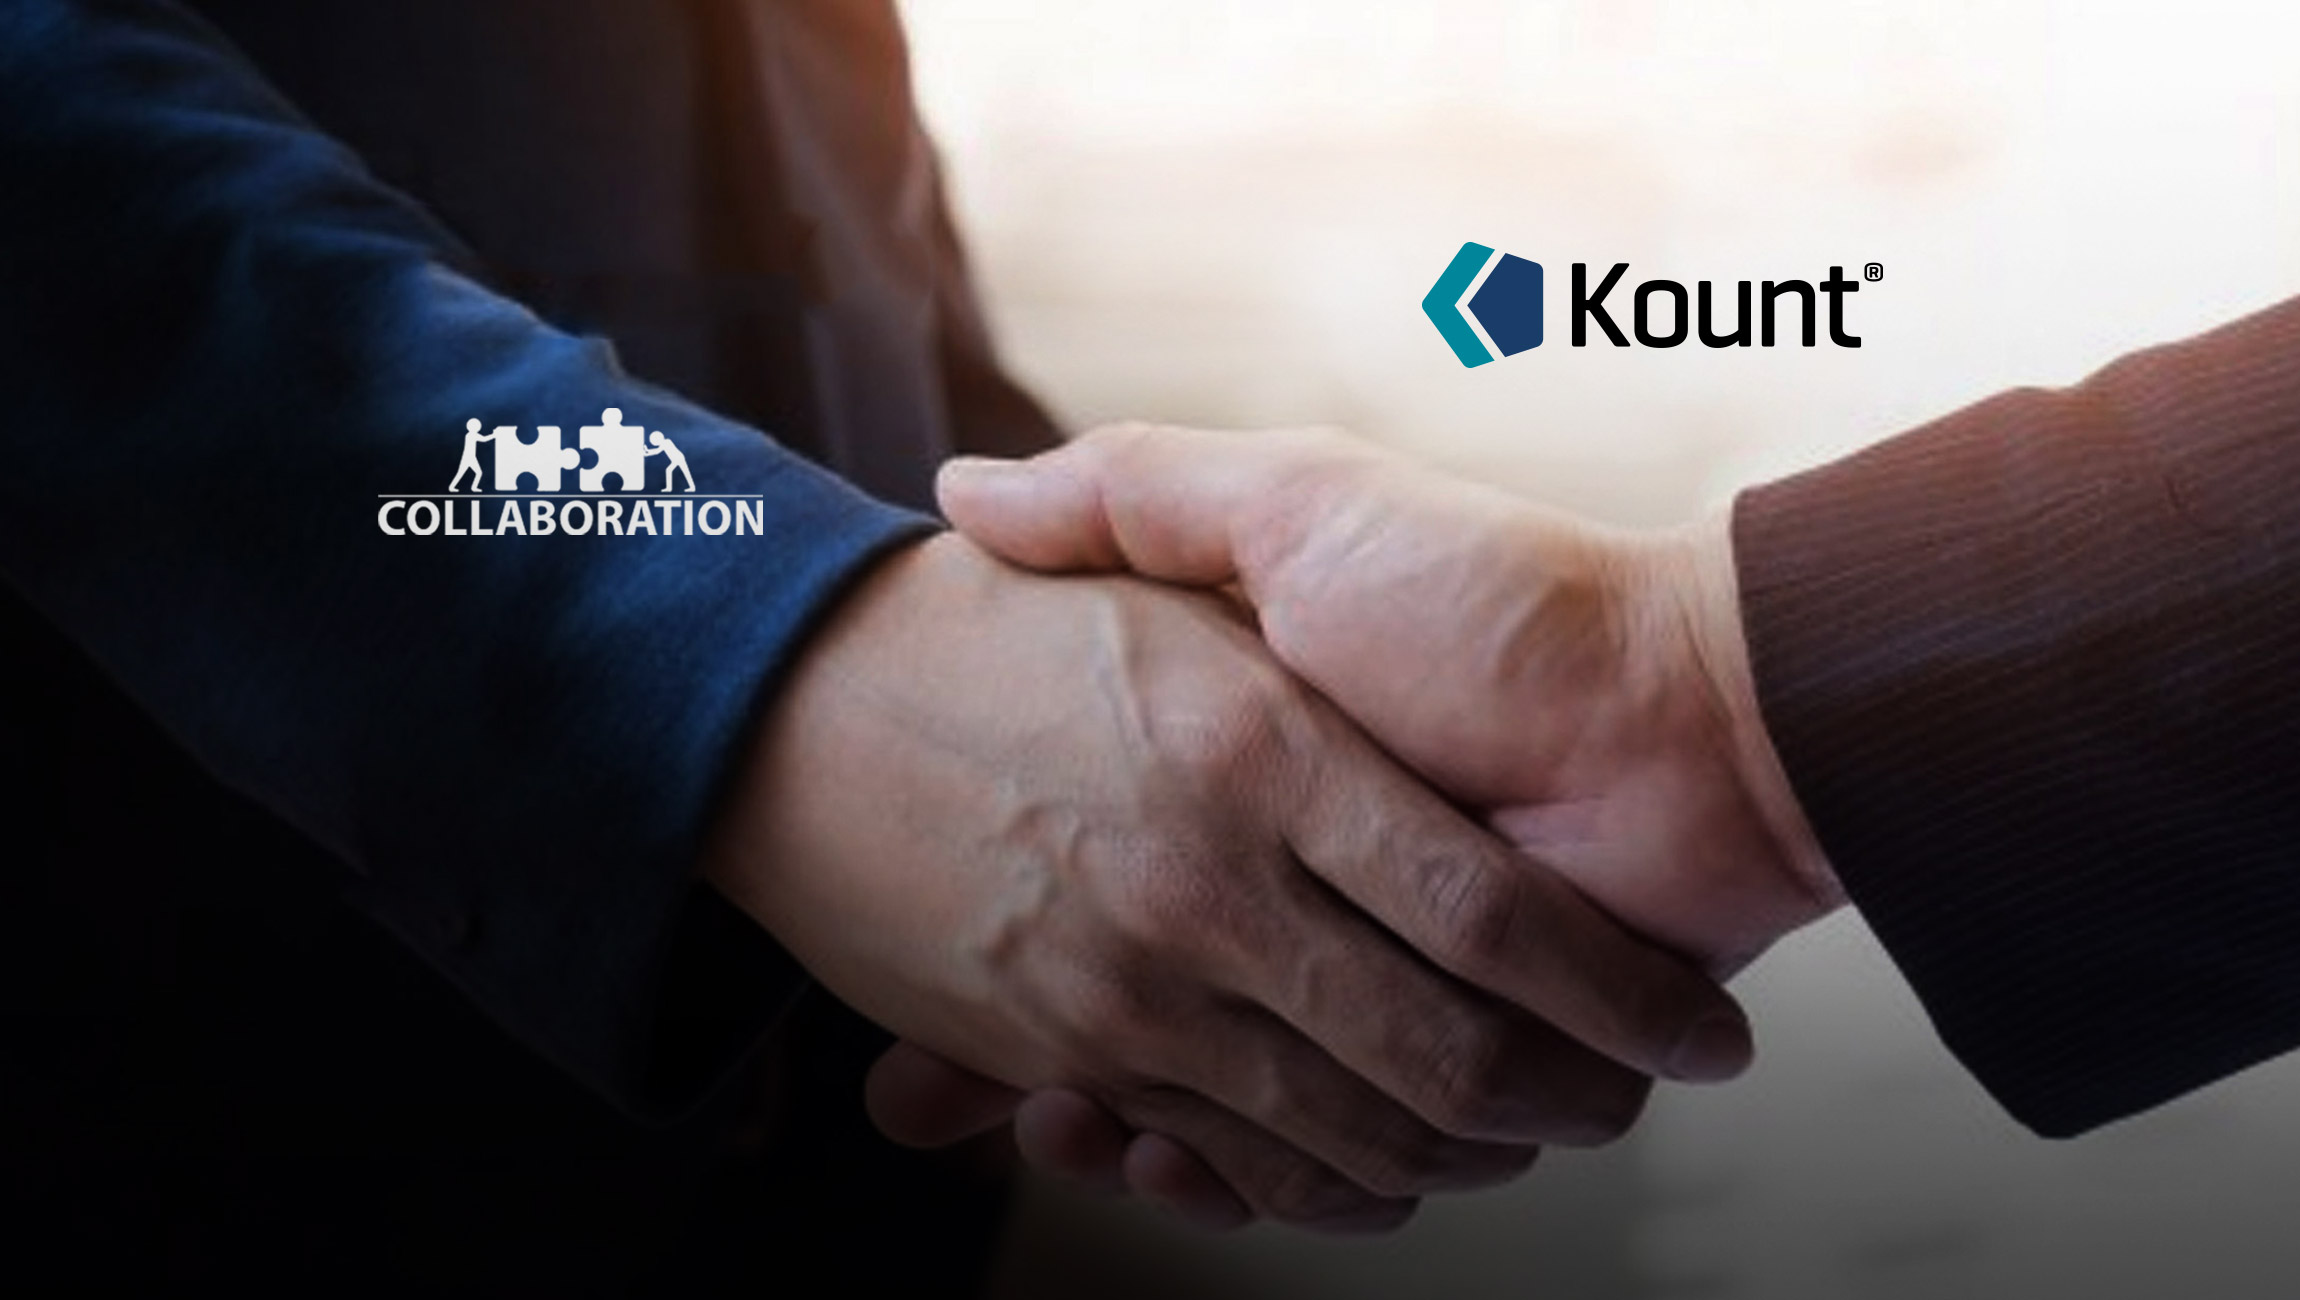 Kount Partners With Snowflake to Deliver Actionable Customer Insights for eCommerce Providers to Improve Customer Experience, Lower Friction, Increase Conversions and Uncover Cross-sell and Upsell Opportunities